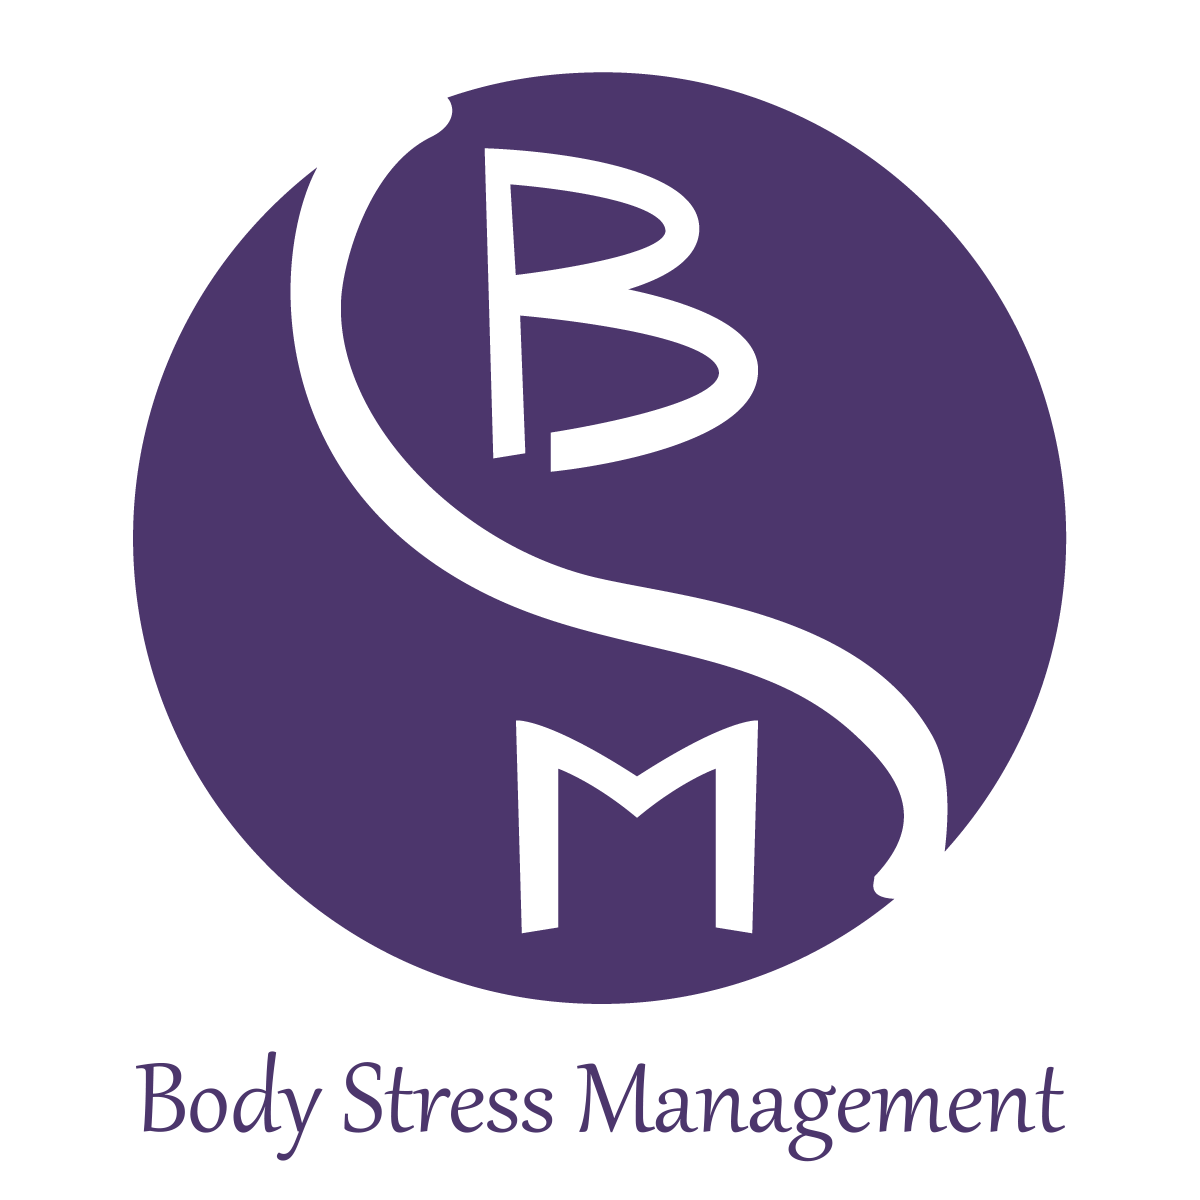 BODY STRESS MANAGEMENT